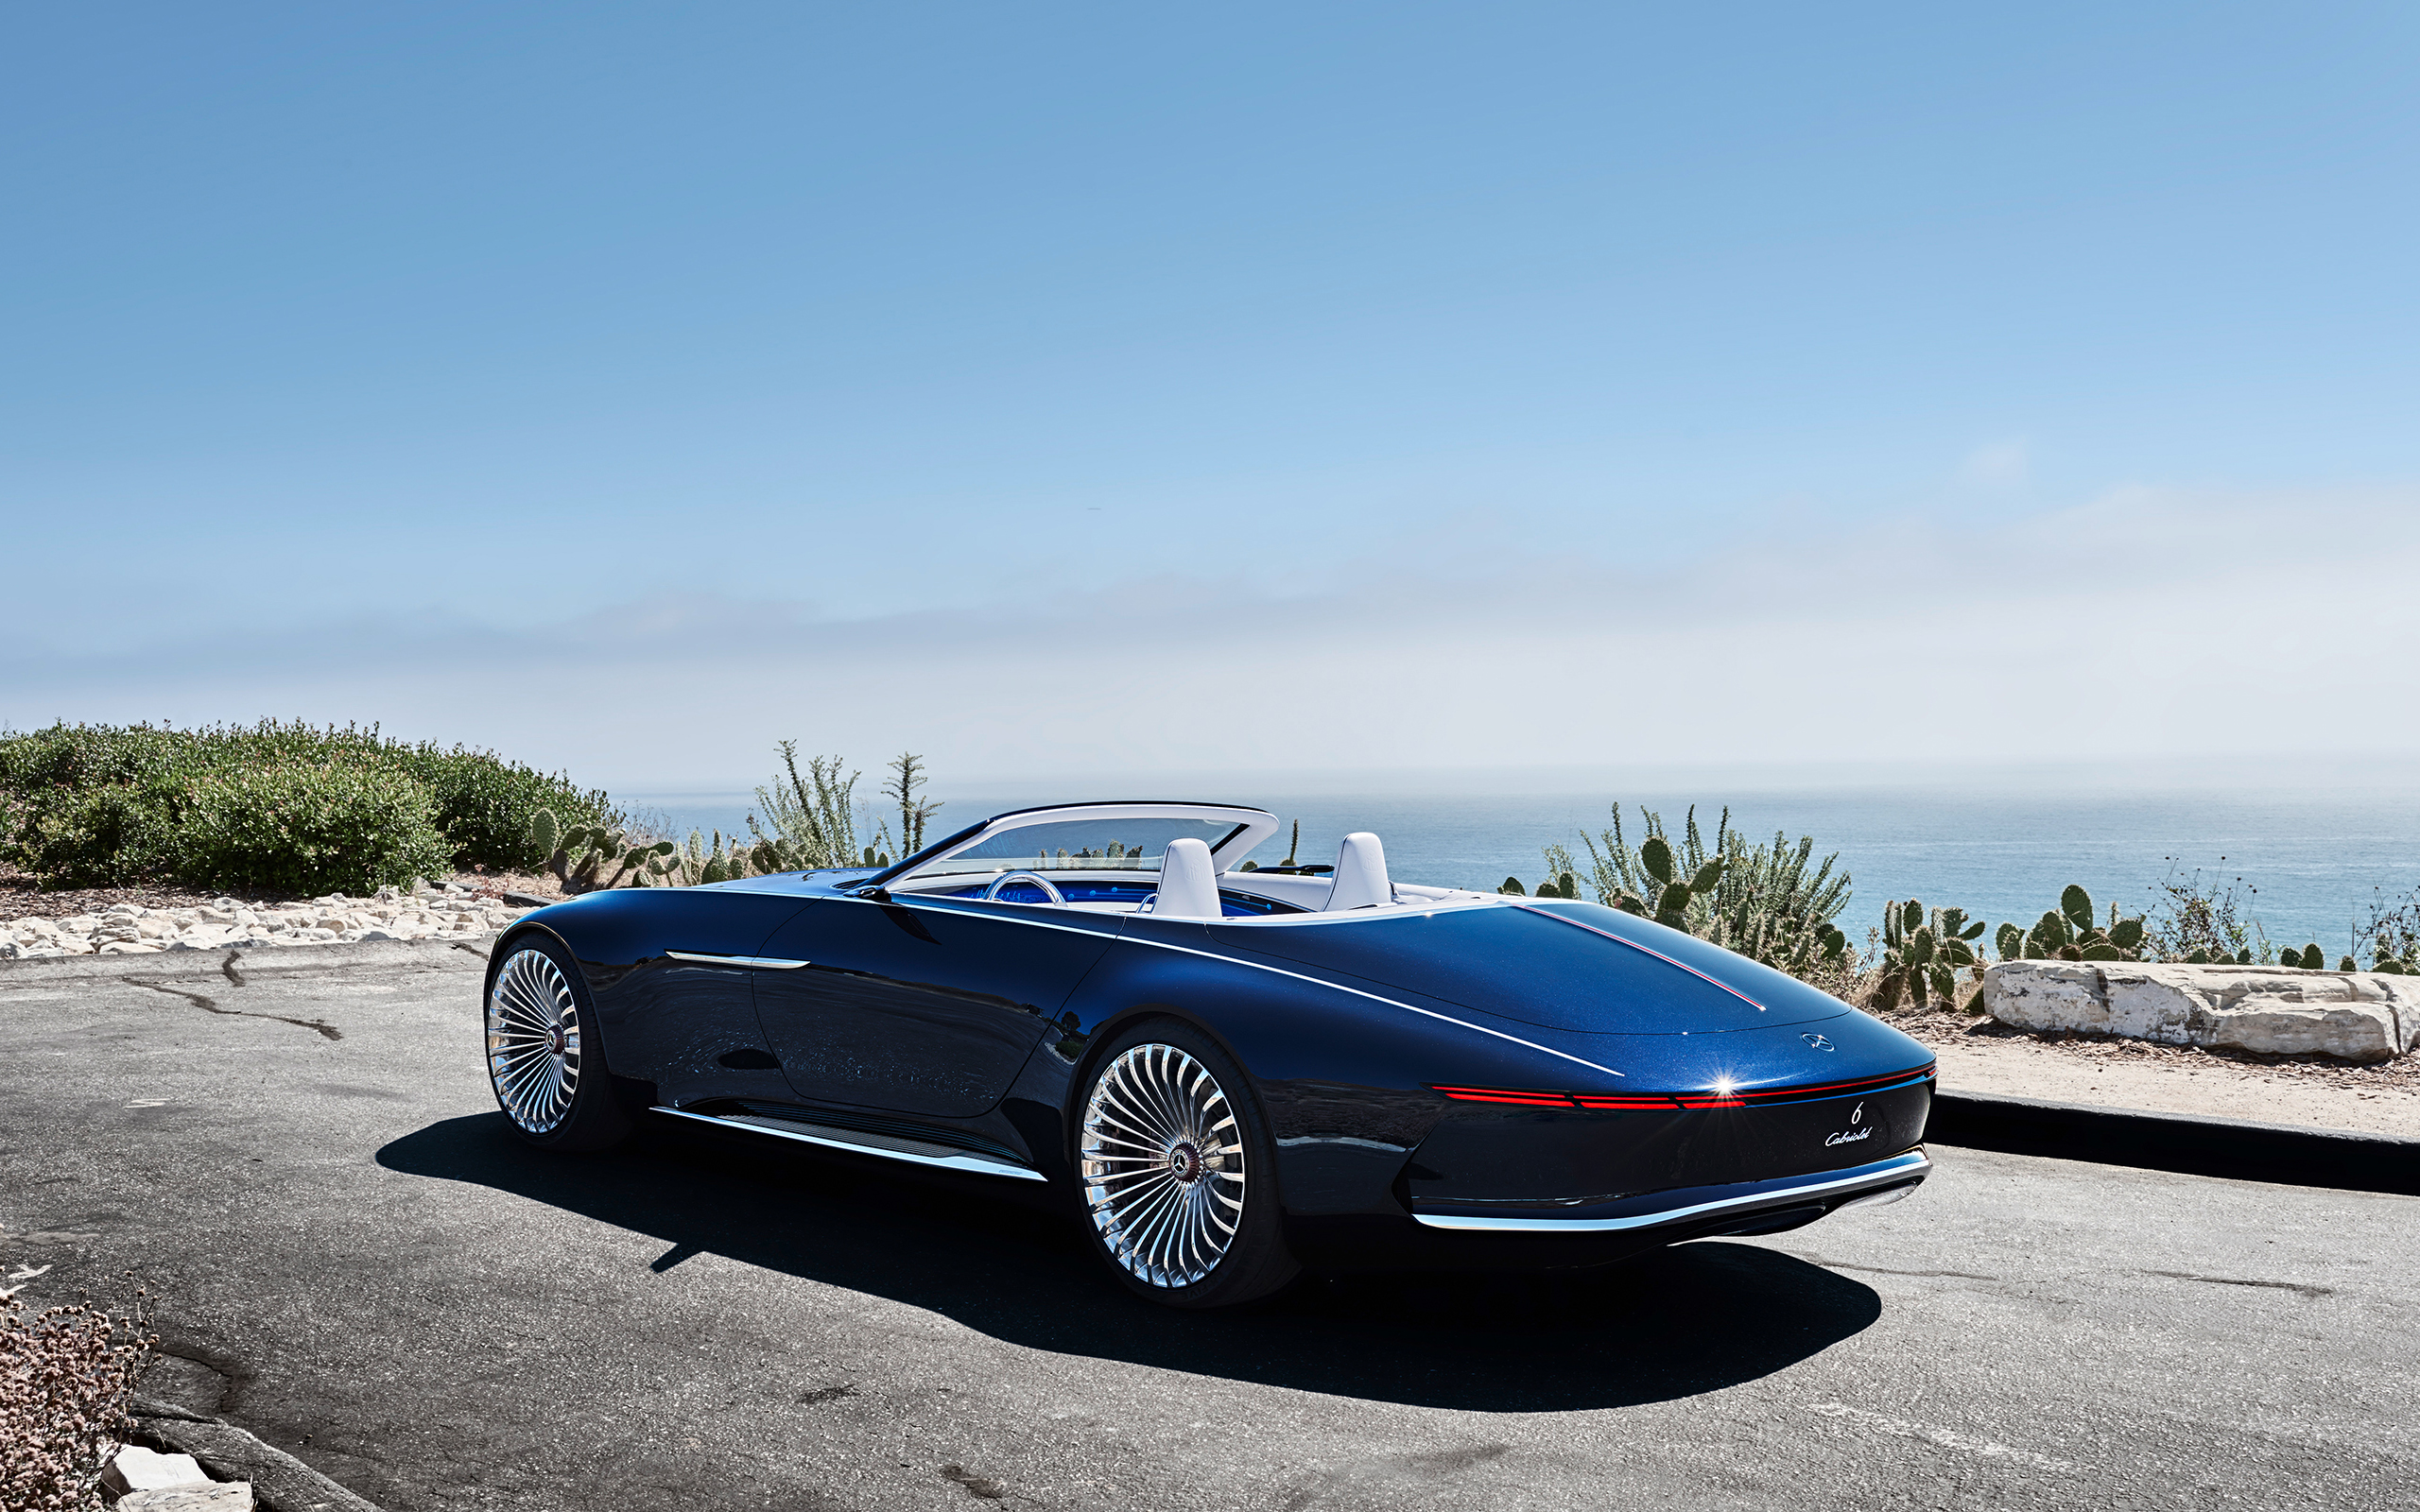 https://assets.mbusa.com/vcm/MB/DigitalAssets/FutureModels/Responsive/MAYBACH_6_CAB/GALLERY/2018-MAYBACH-6-CABRIOLET-FUTURE-GALLERY-008-WR-D.jpg